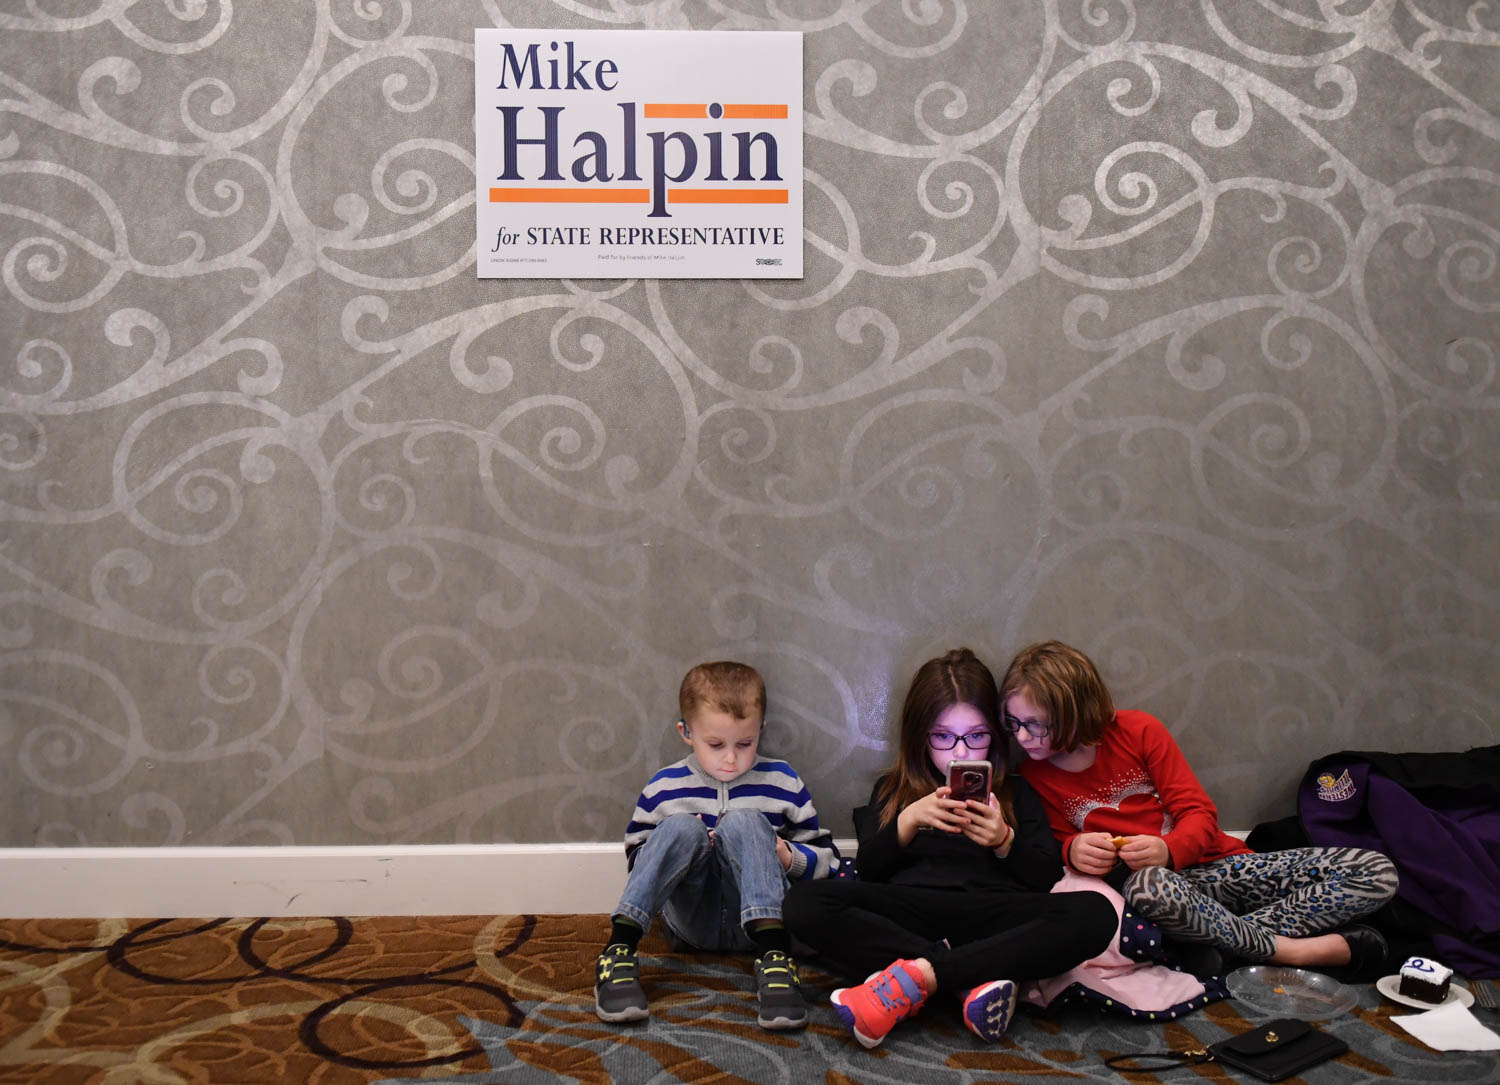 Kaysen Stokes, 4, Kenlie Stokes, 7 and  Kylar Elliott, 7, pass the time by playing games on their devices during the Rock Island County Democrats' election night party, at the Holiday Inn Rock Island, Tuesday Nov. 5, 2018.  (Todd Mizener - Dispatch/Argus)